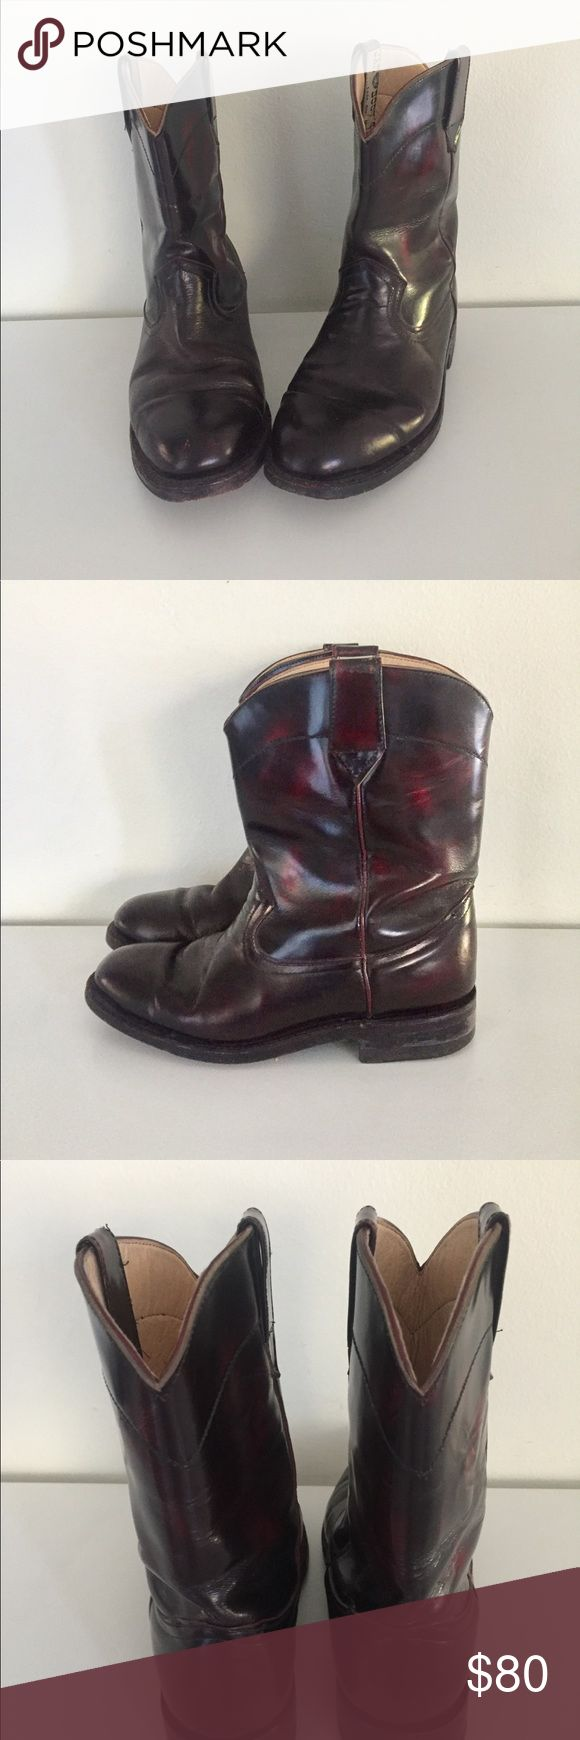 """Western Boots Leather Two Tone Black Oxblood 8.5 High quality hand made black and oxblood red leather calf length cowboy boots. The upper, inner and outer sole is all leather, the heel is wood with rubber a cap. The brand name Jar Boots, made in Mexico.  Material: Leather  Color/print: black, red Maker: Jar Boots Place of origin: Mexico  Era: 70s Size: marked men's 5.5 Fit like a US Women's 8.5M  Measurements:  10"""" high Length- 10""""  Width- 4"""" 1.5"""" Heel  Condition: The soles show some wear…"""